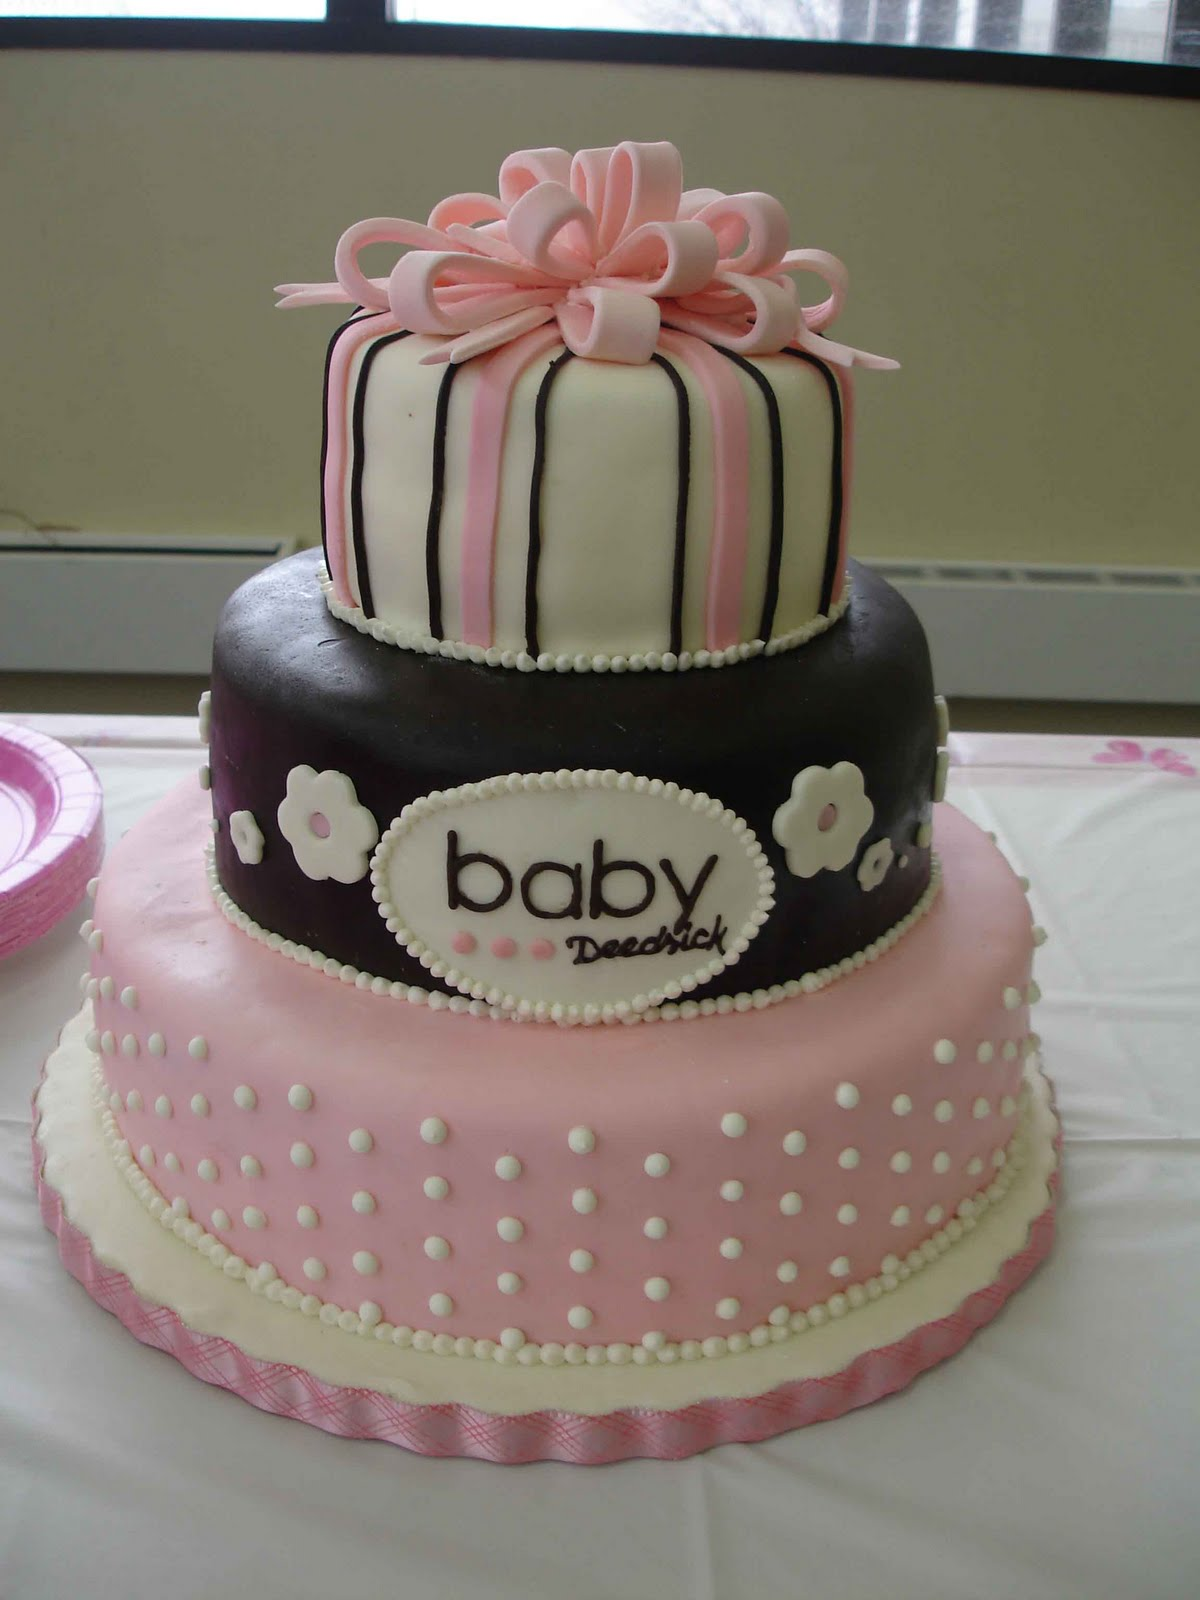 Brown And Pink Living Room Decor: Serendipity Cake Design: Pink And Brown Baby Cake